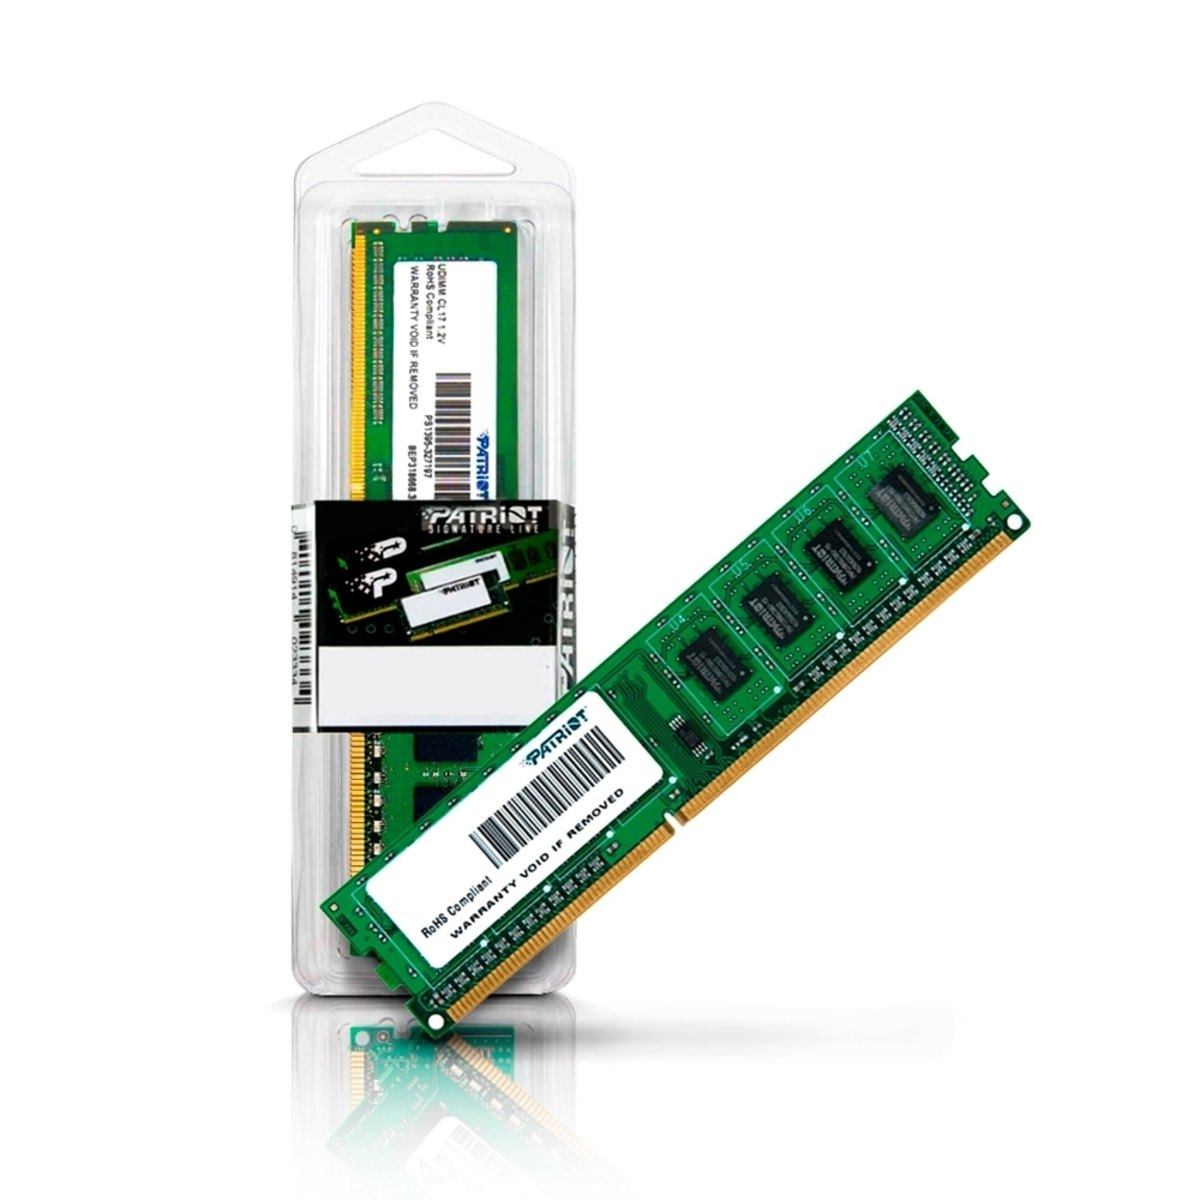 MEMORIA 4GB/DDR3 1600MHZ CL11 PATRIOT  - Express Informática